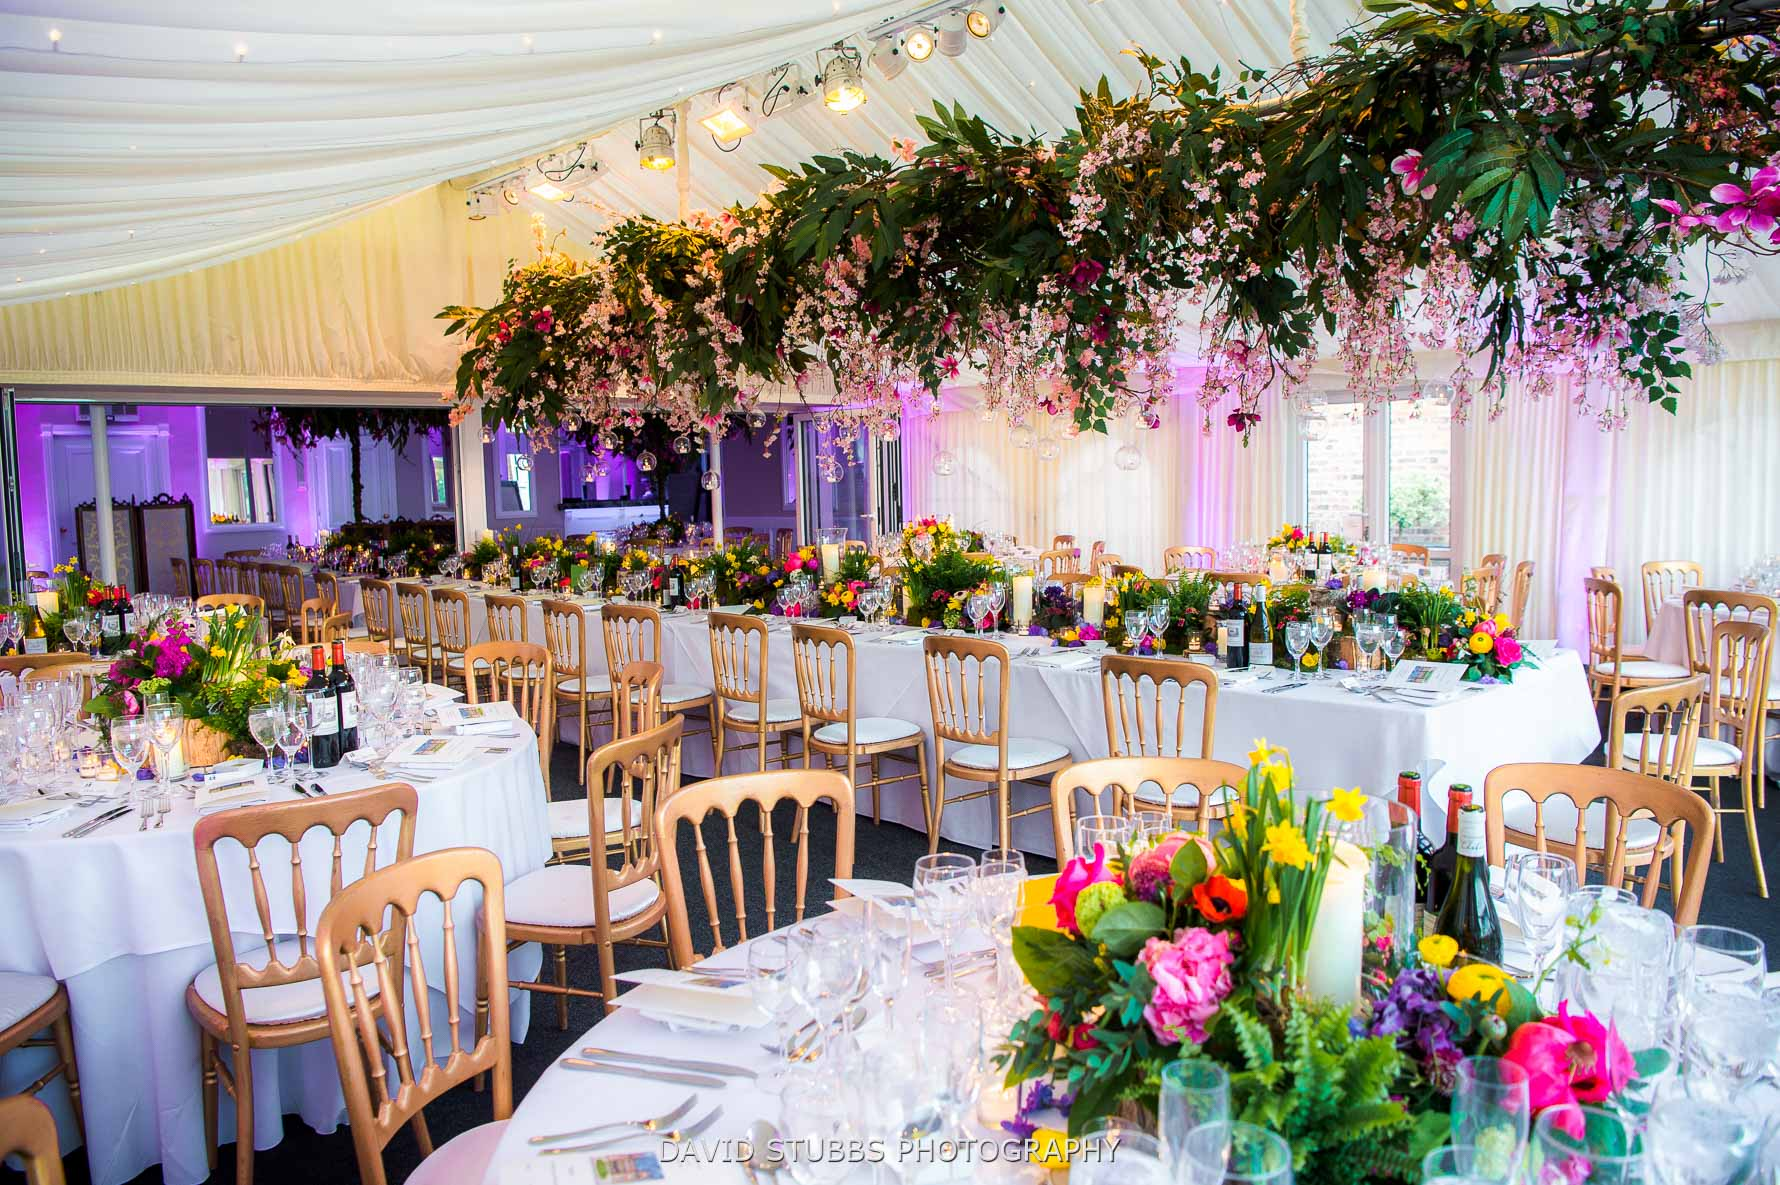 wedding breakfast room set-up with flowers